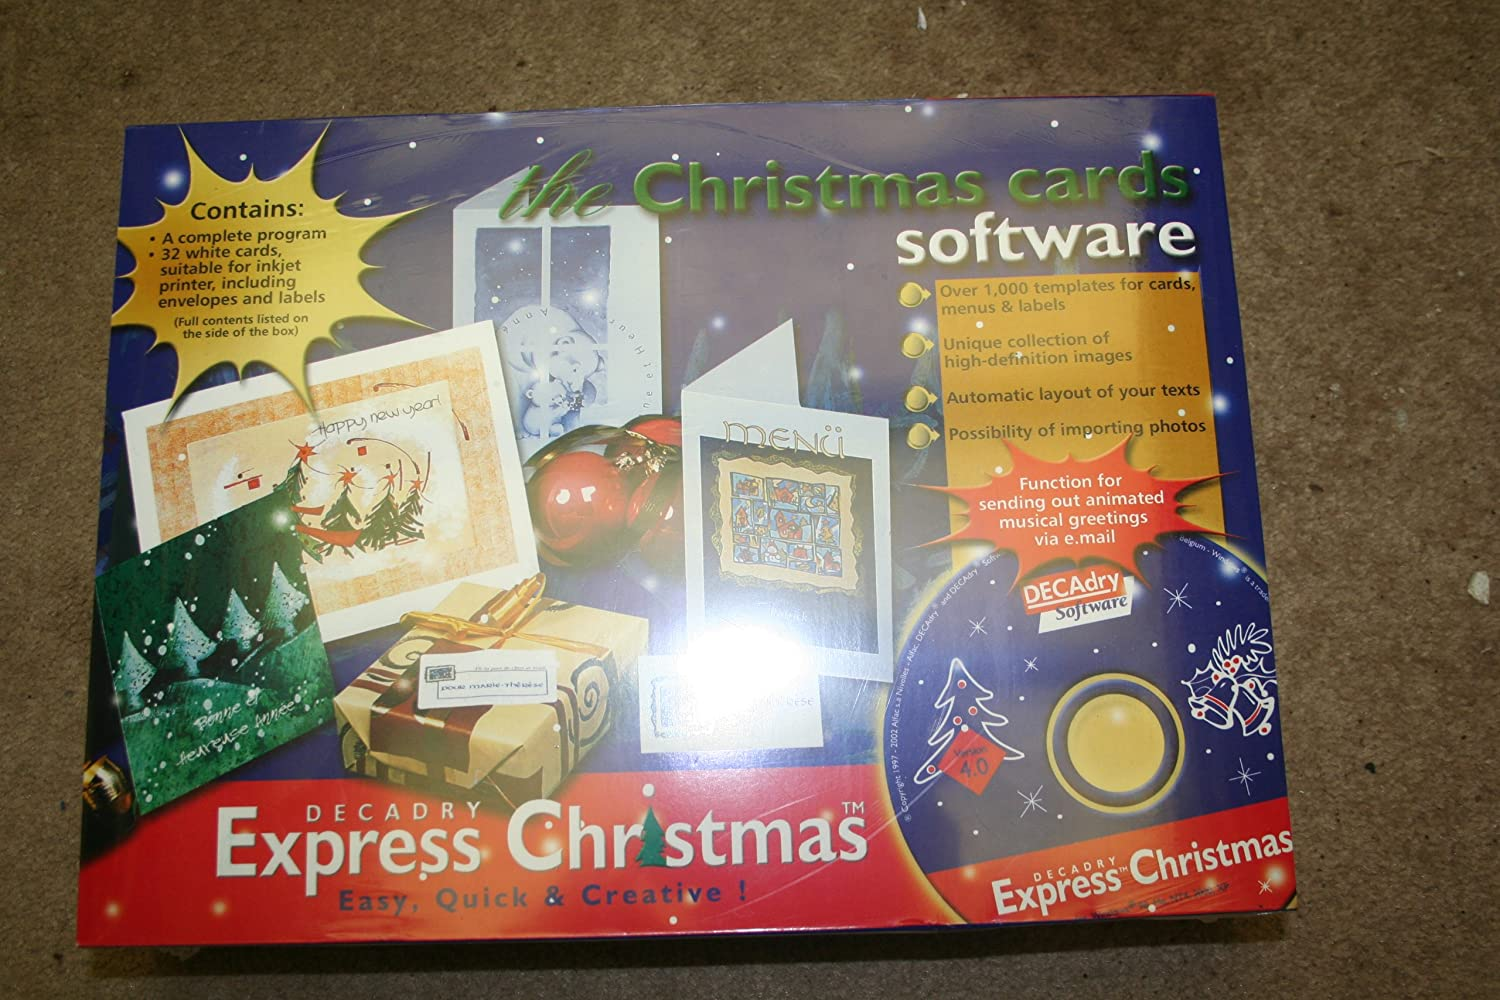 Decadry Express Christmas - The Christmas Cards Software: Amazon ...